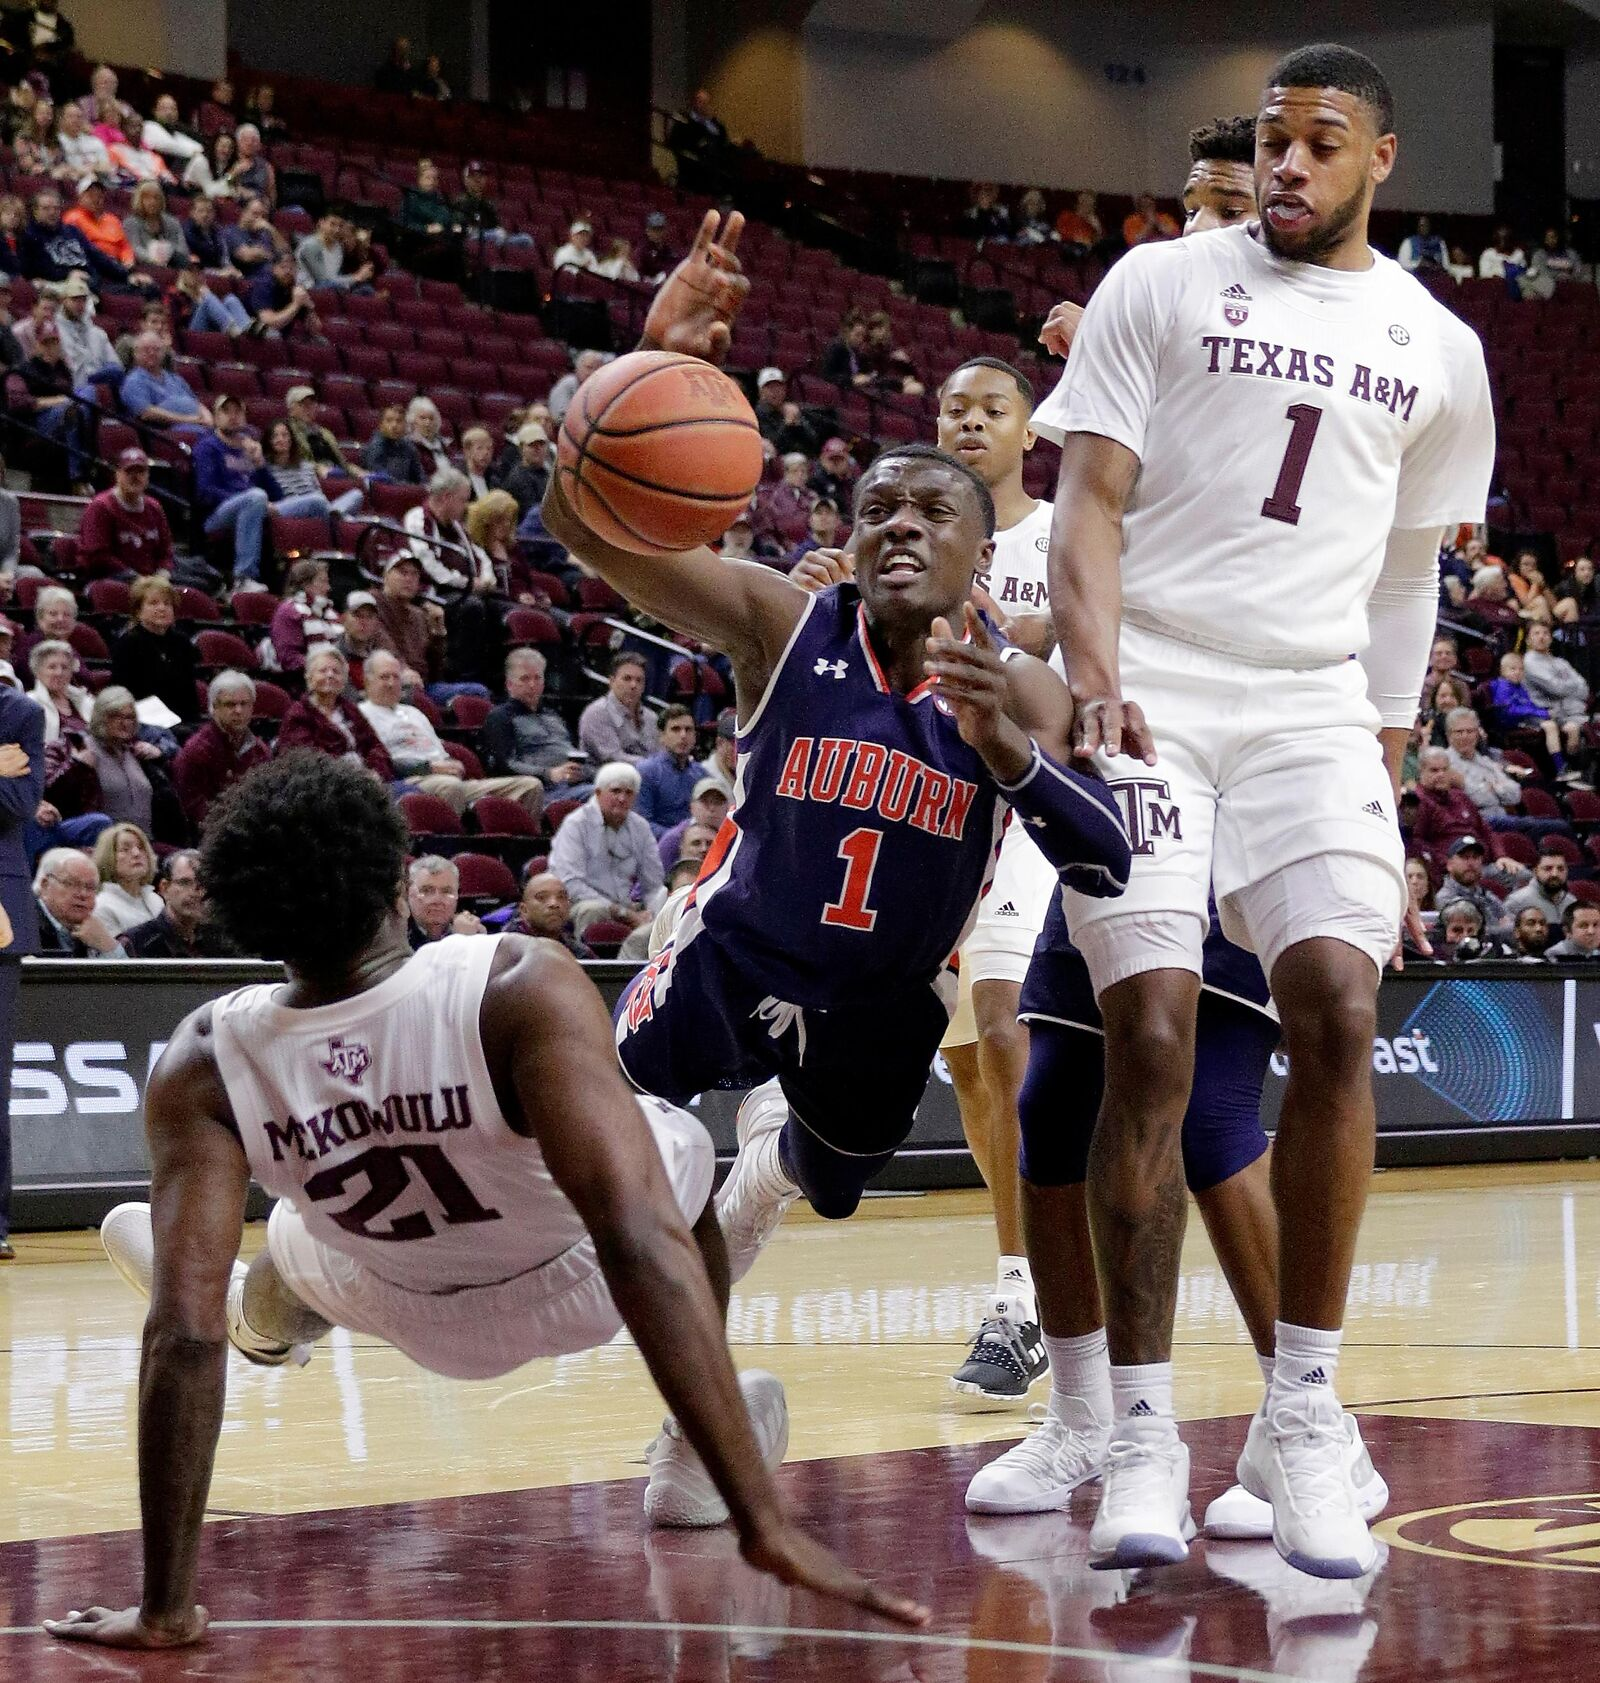 Auburn guard Jared Harper (1) loses the ball on a drive to the basket between Texas A&M forward Christian Mekowulu (21) and guard Savion Flagg (1) during the first half of an NCAA college basketball game, Wednesday, Jan. 16, 2019, in College Station, Texas. (AP Photo/Michael Wyke)